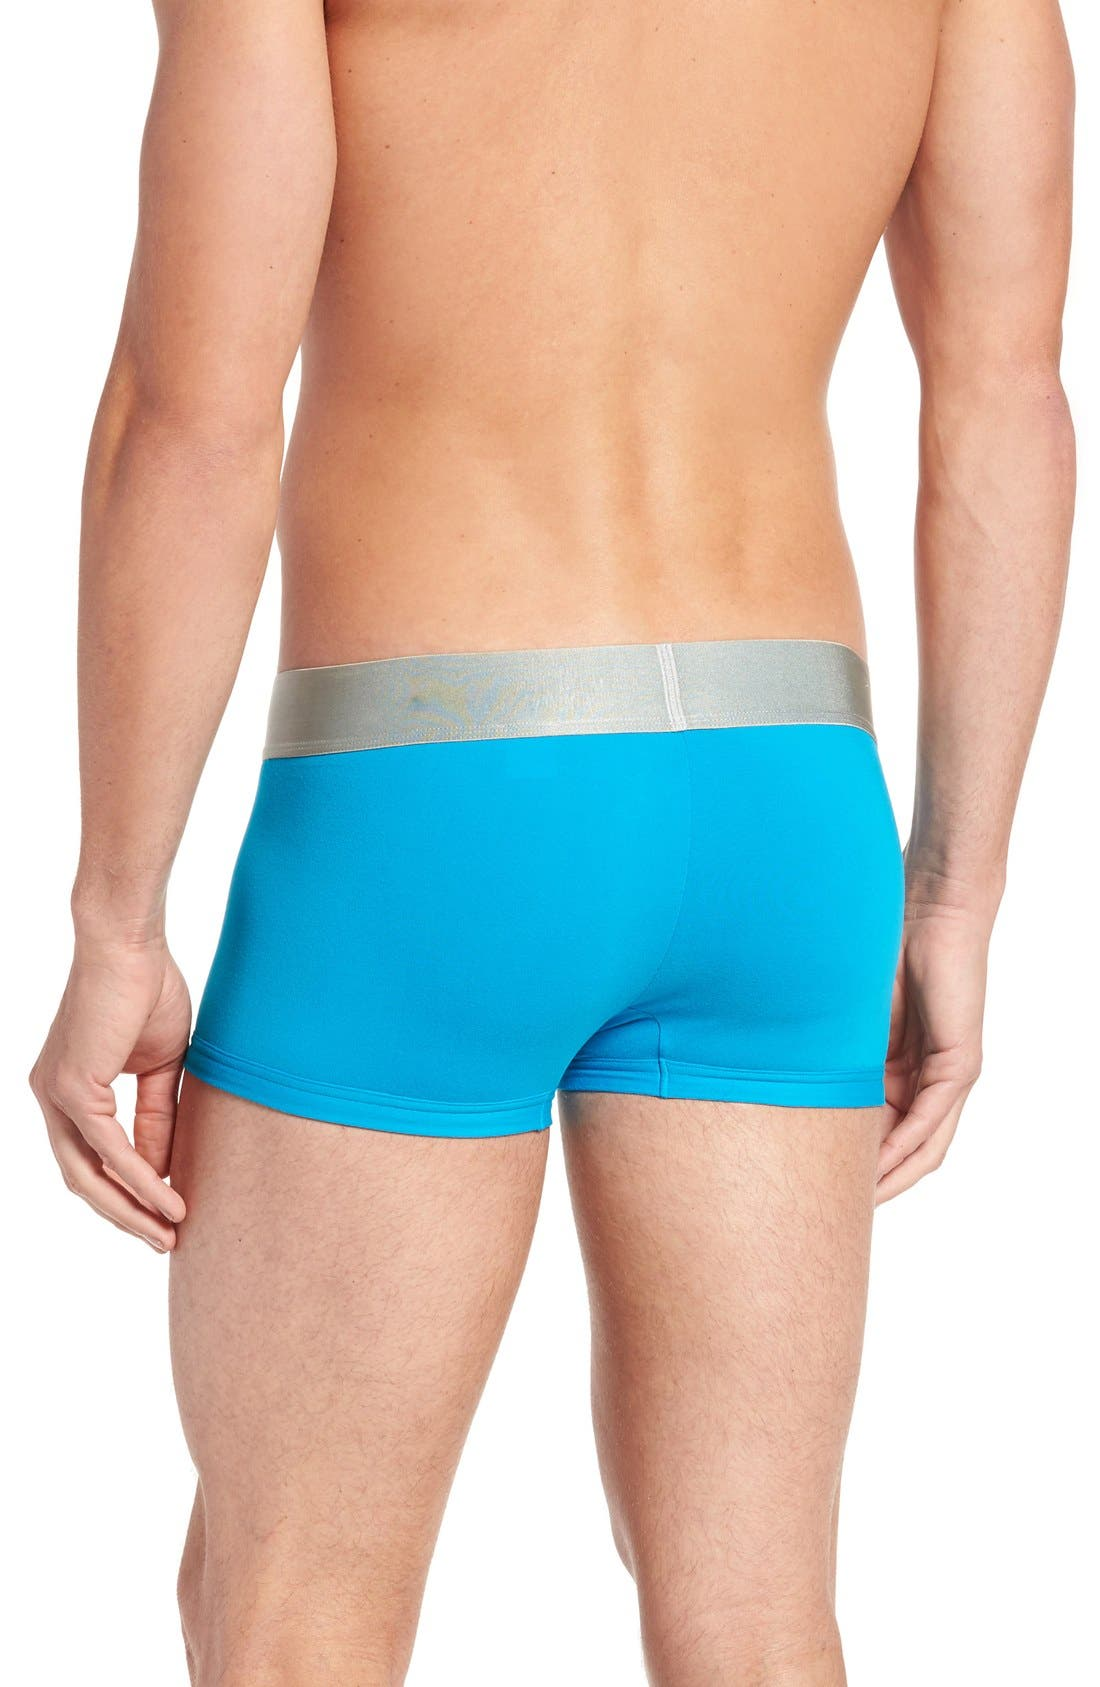 Alternate Image 2  - Calvin Klein Steel U2716 Microfiber Low Rise Trunks